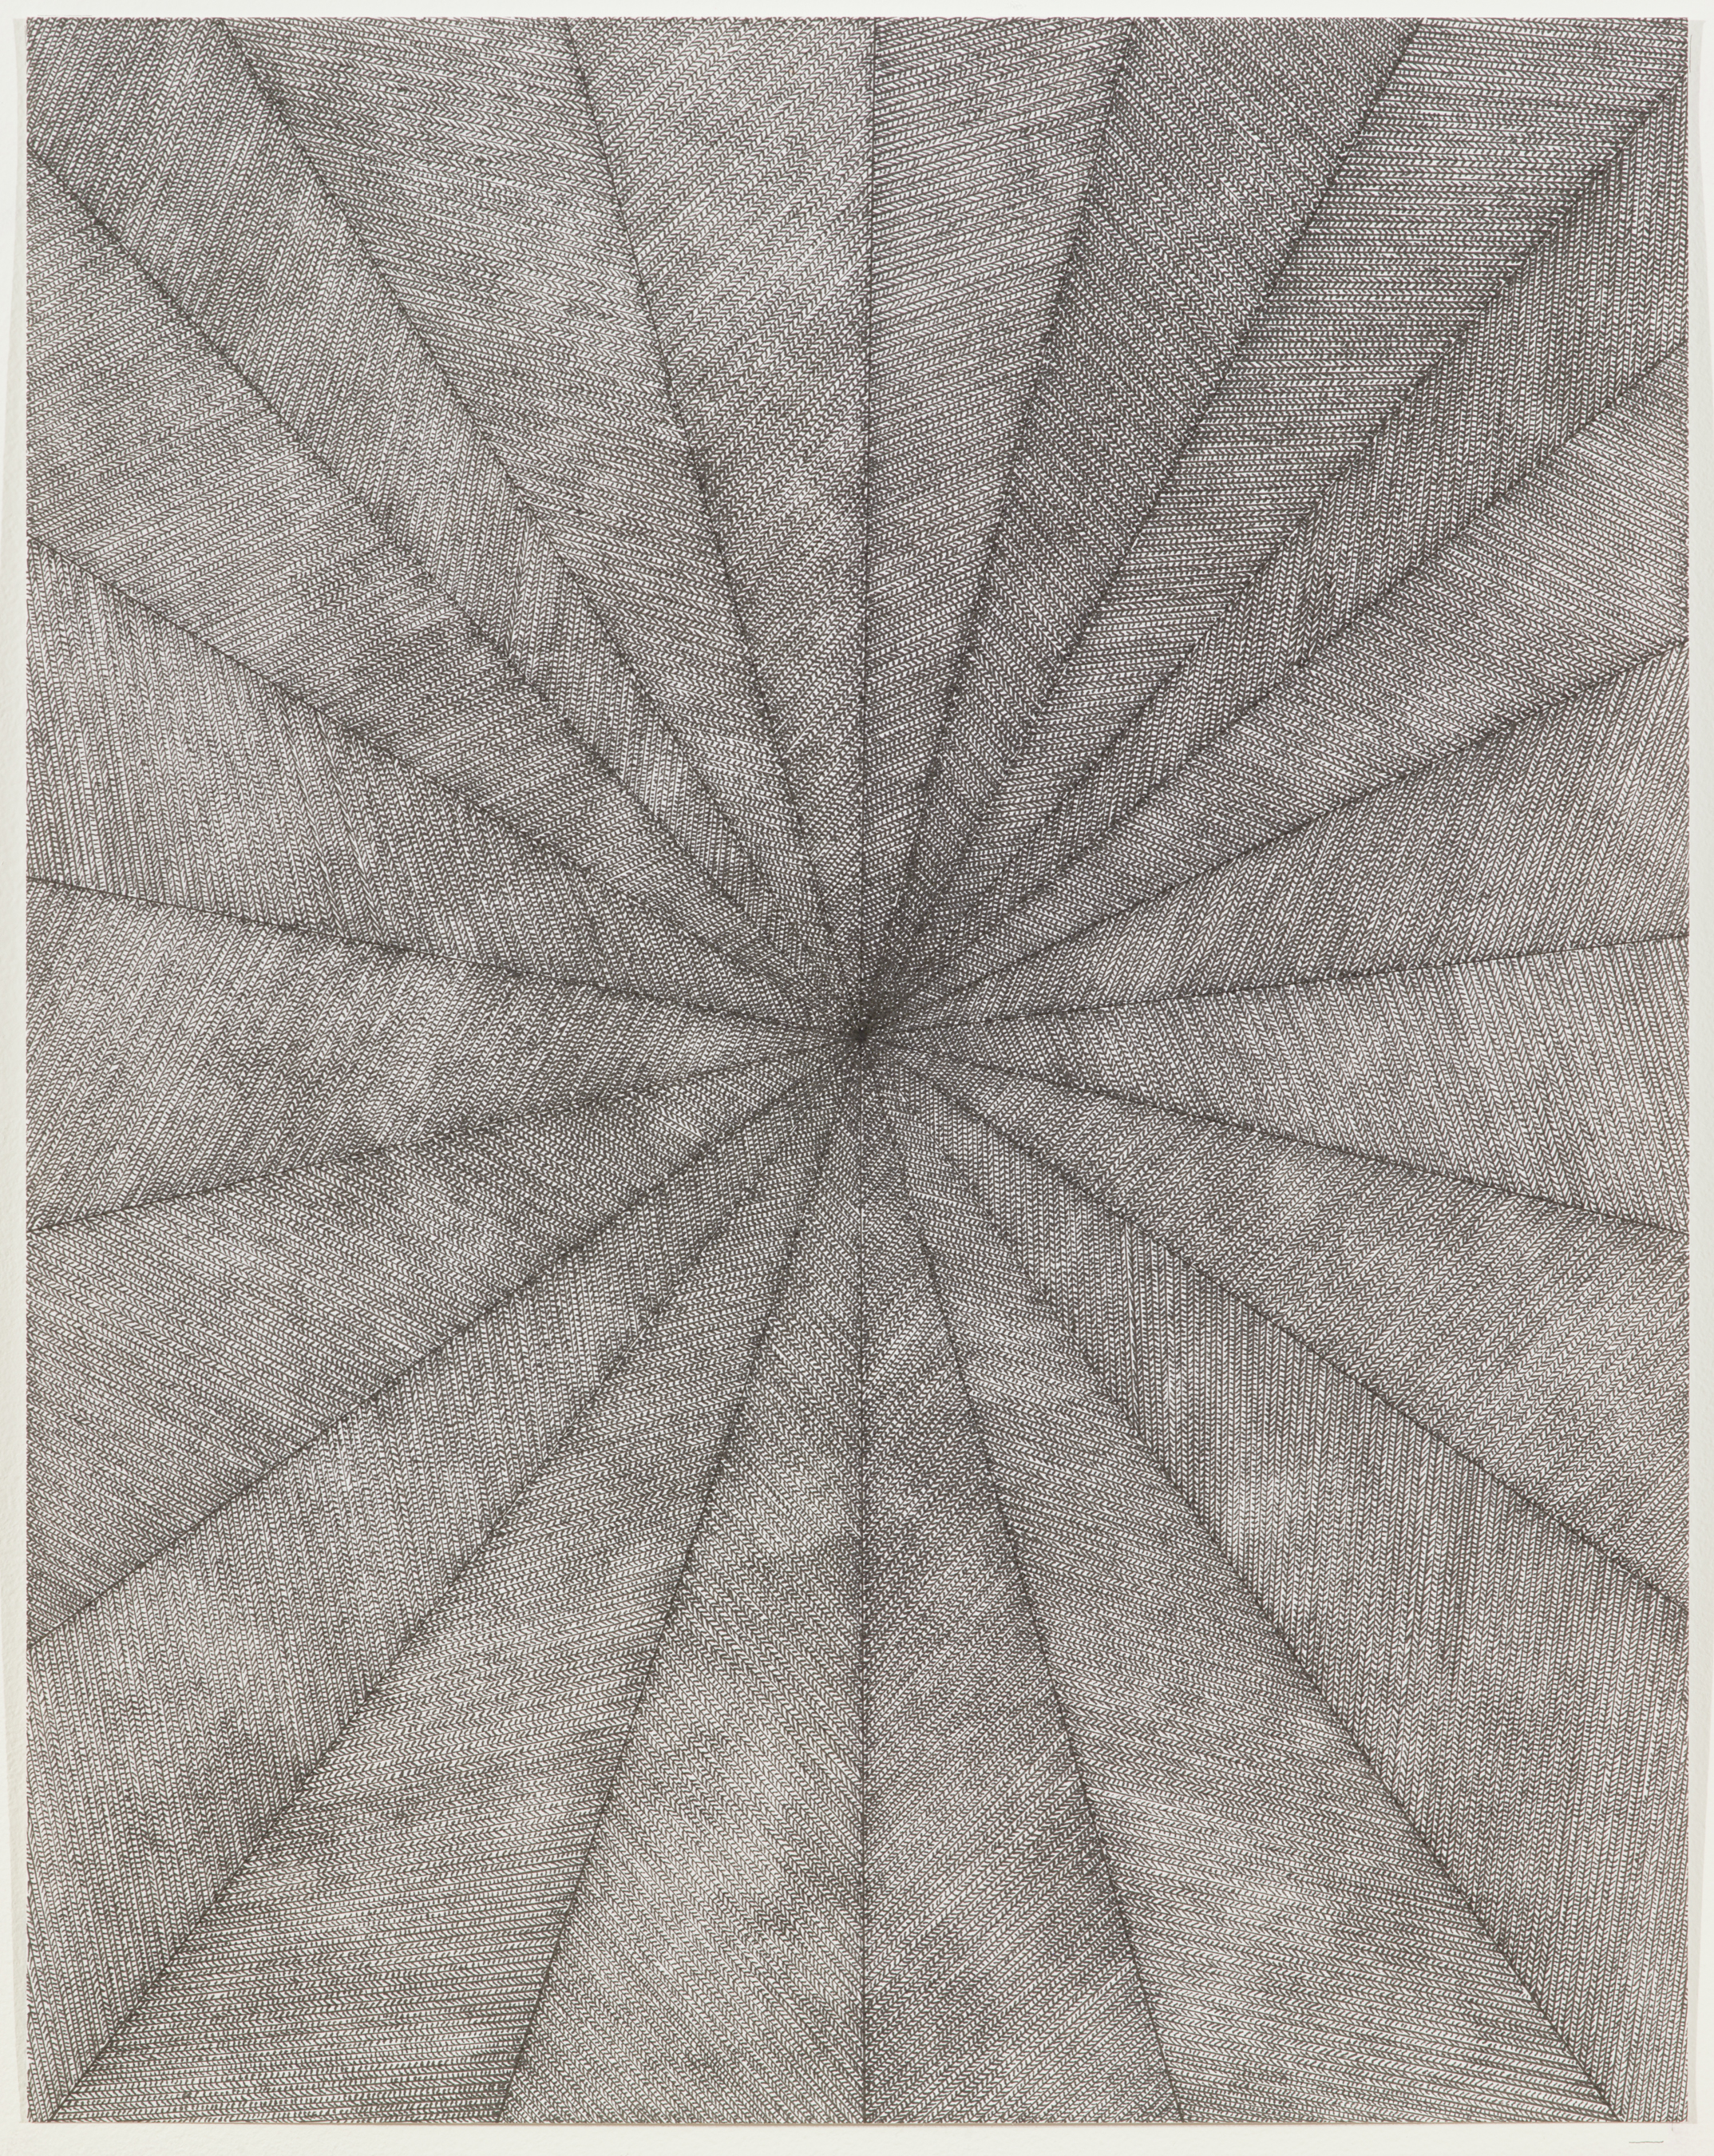 """Book 6 Volume 1 Page 1, 2018  in """"Richard Tinkler: Drawings"""" at 56 Henry."""